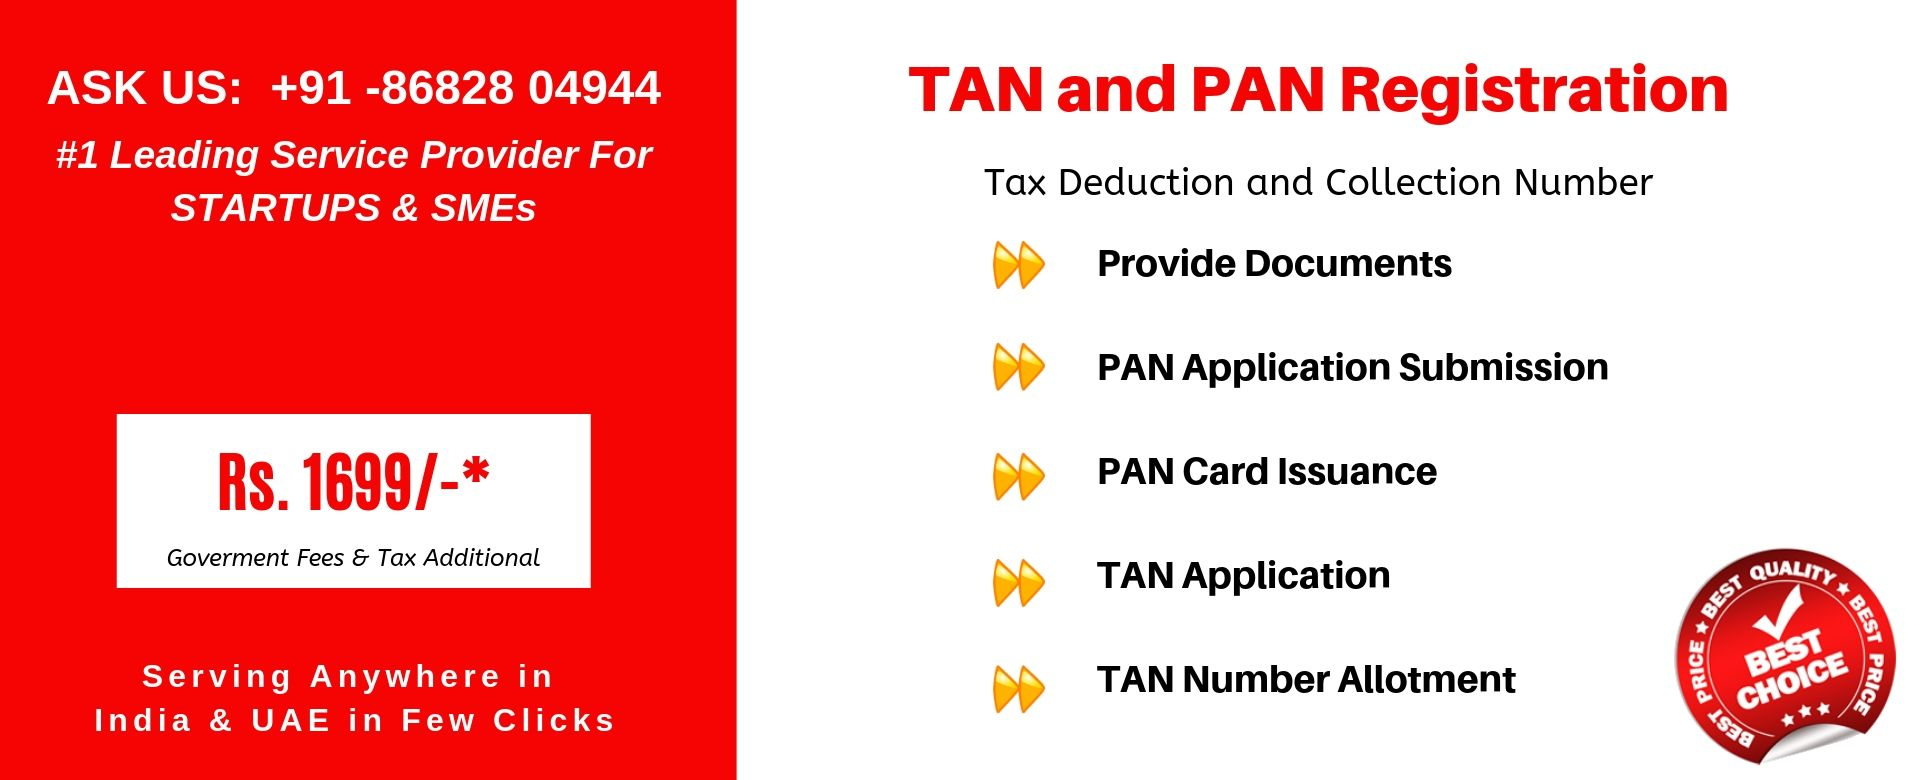 tan pan registration in india